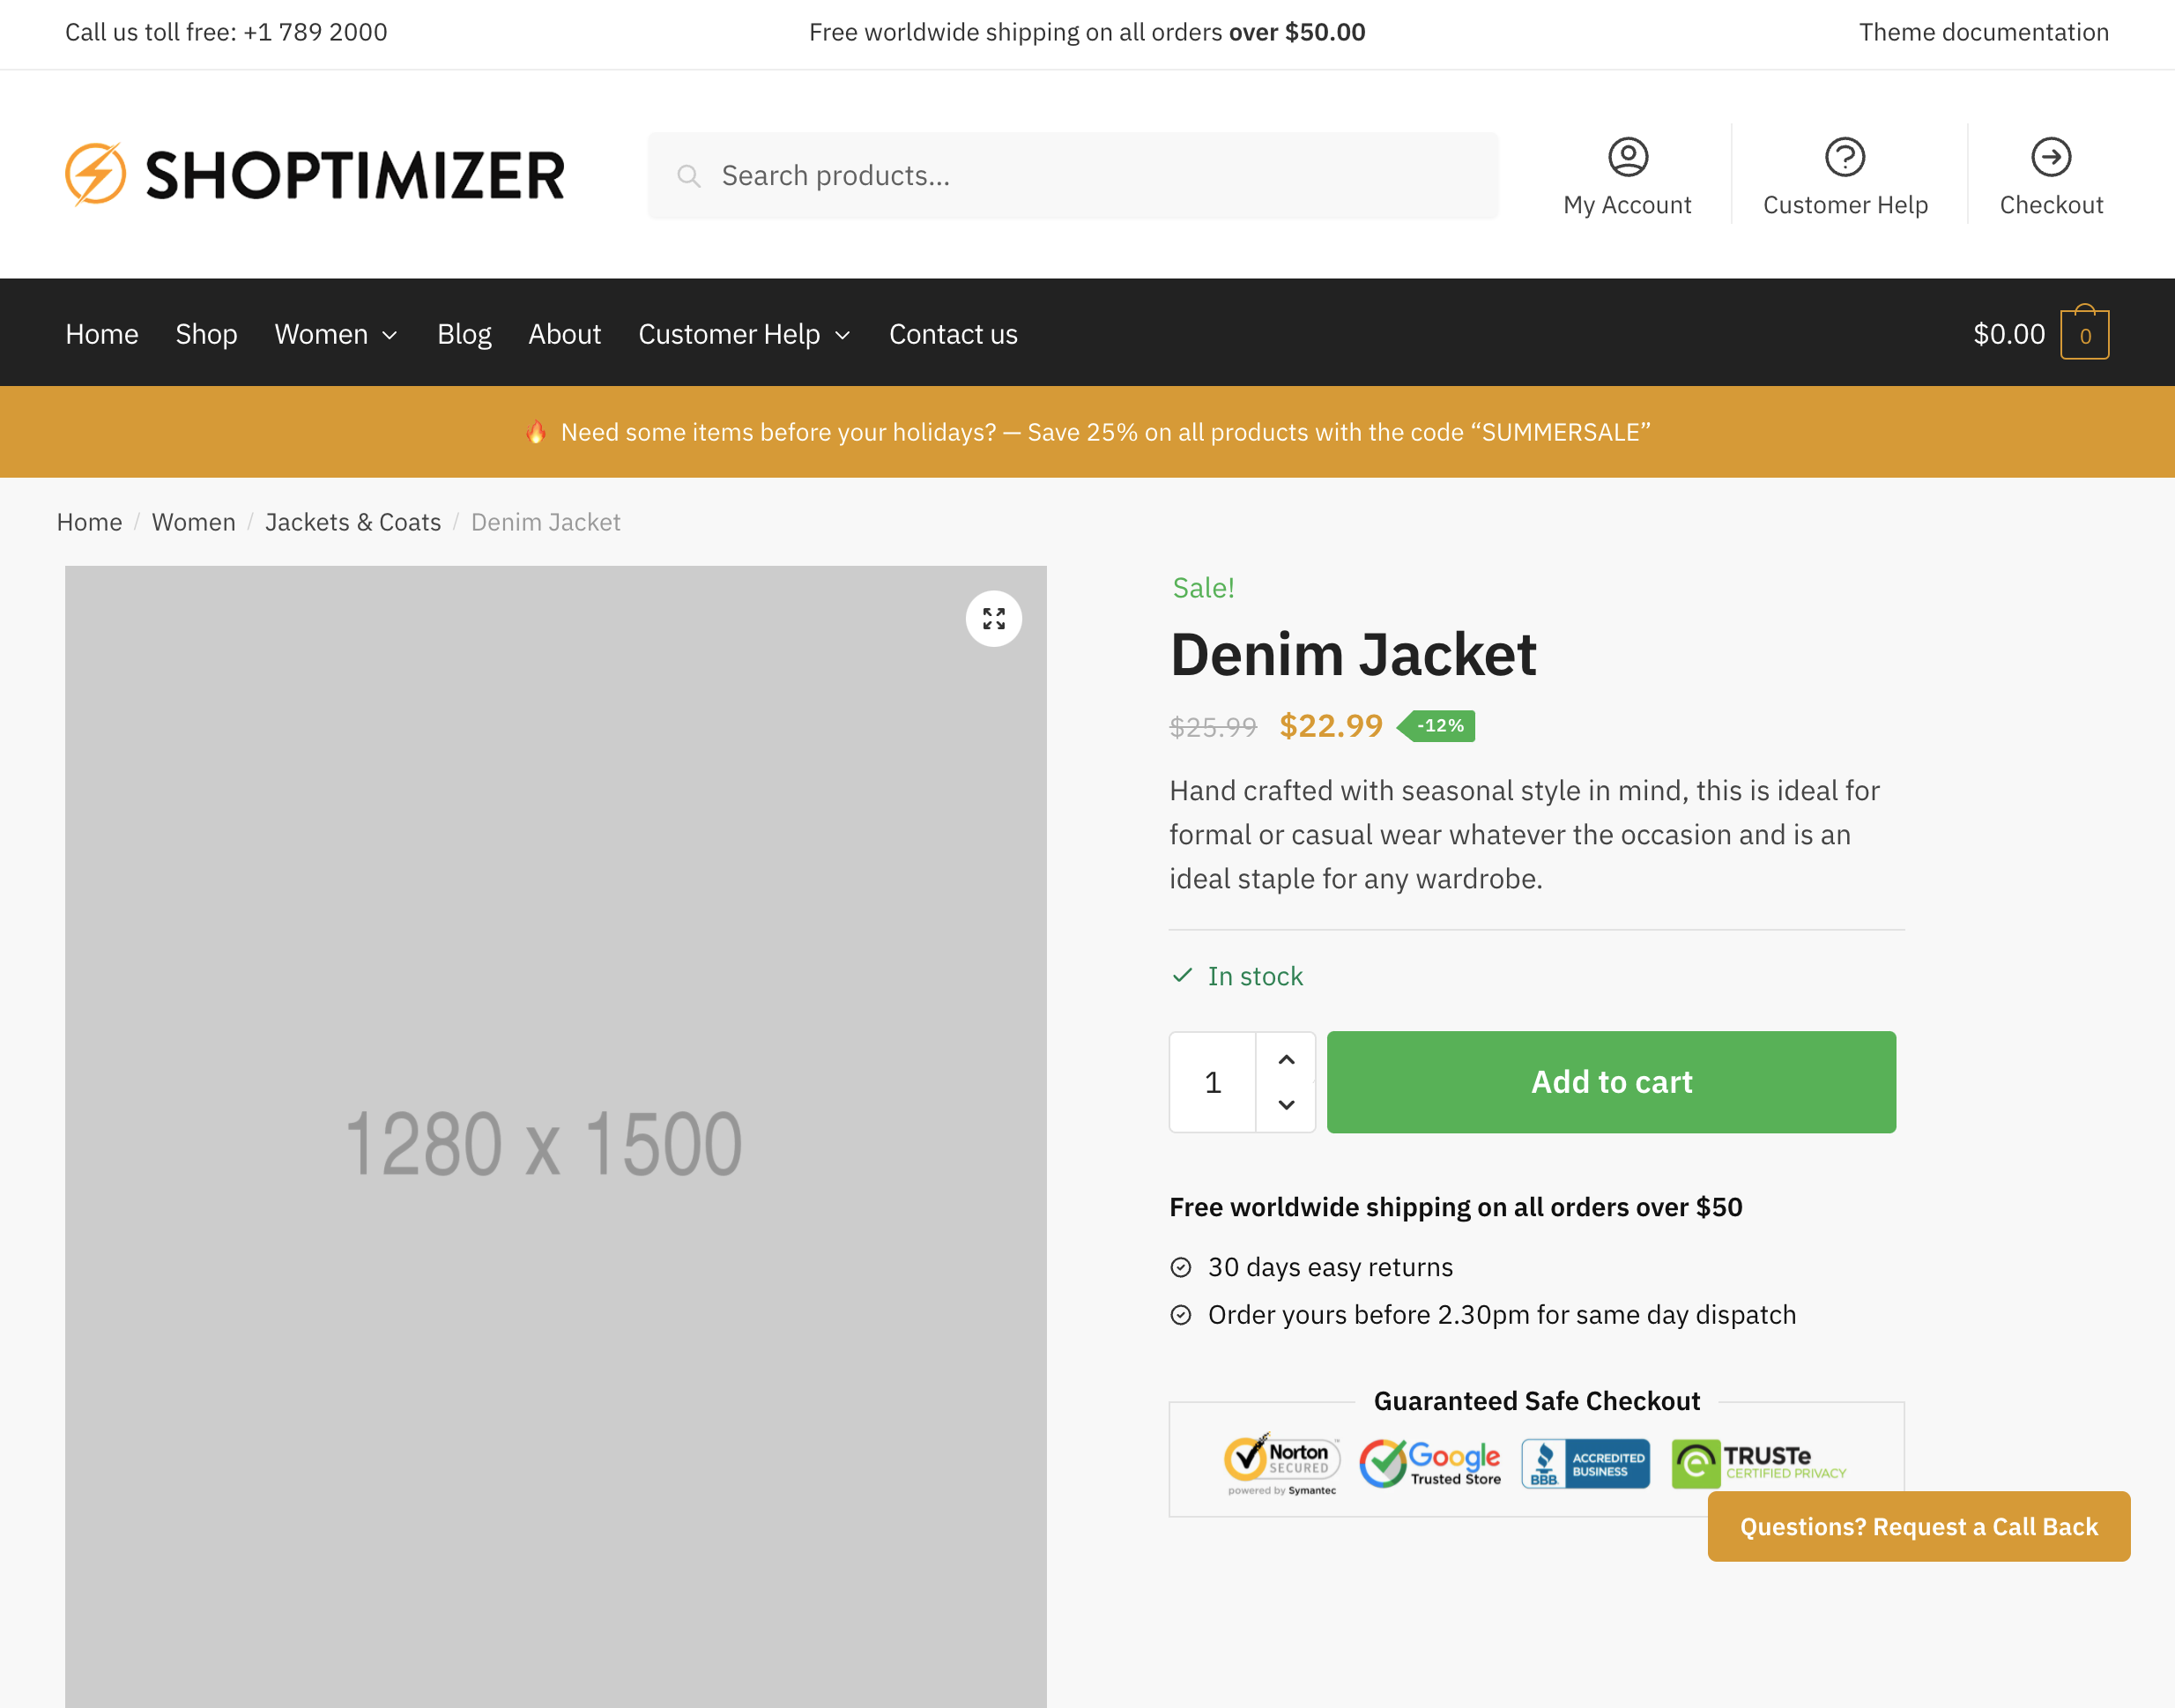 Single Product Page Result